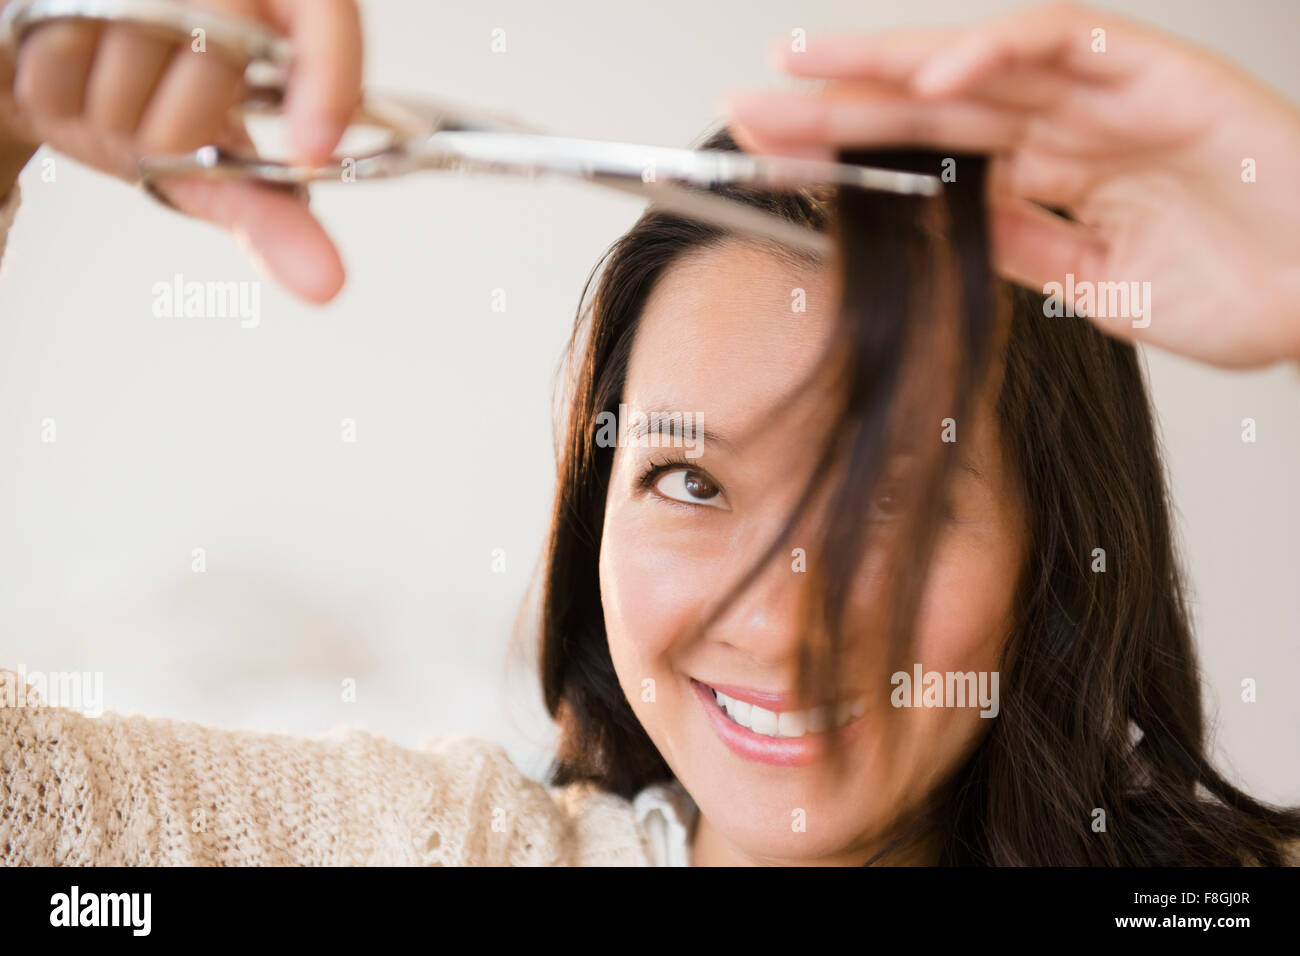 Chinese Haircut High Resolution Stock Photography and Images - Alamy